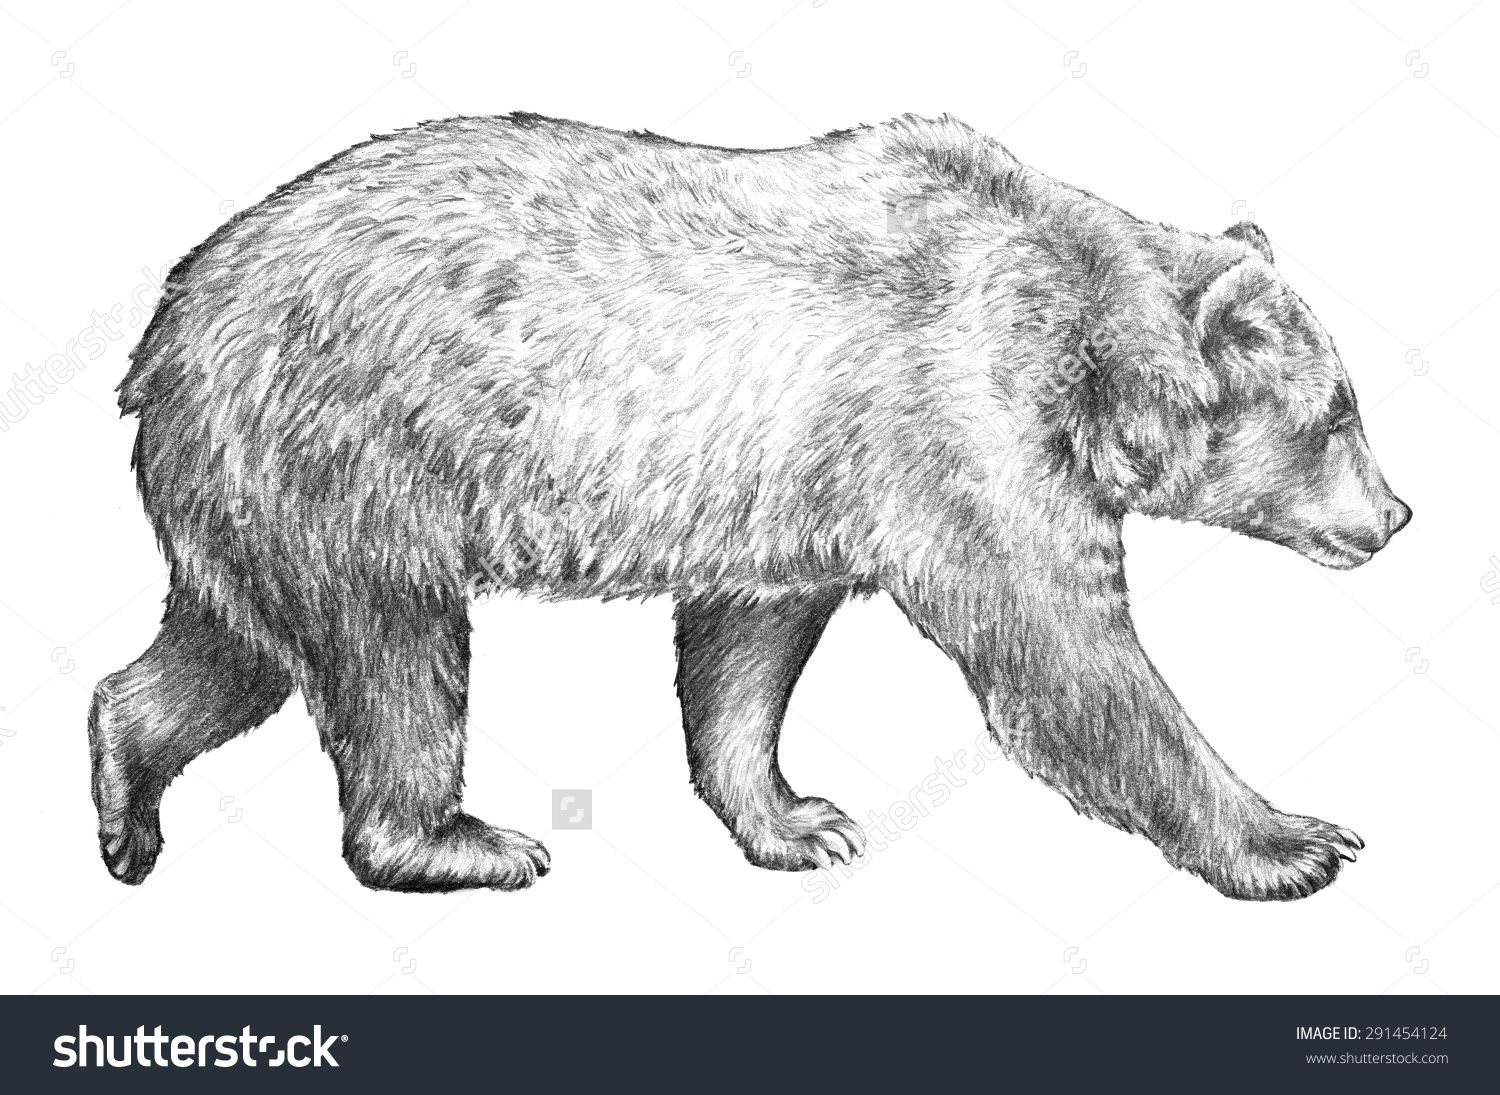 Grizzly Bear Hand Drawn Sketch Of Bear Walking Dangerous